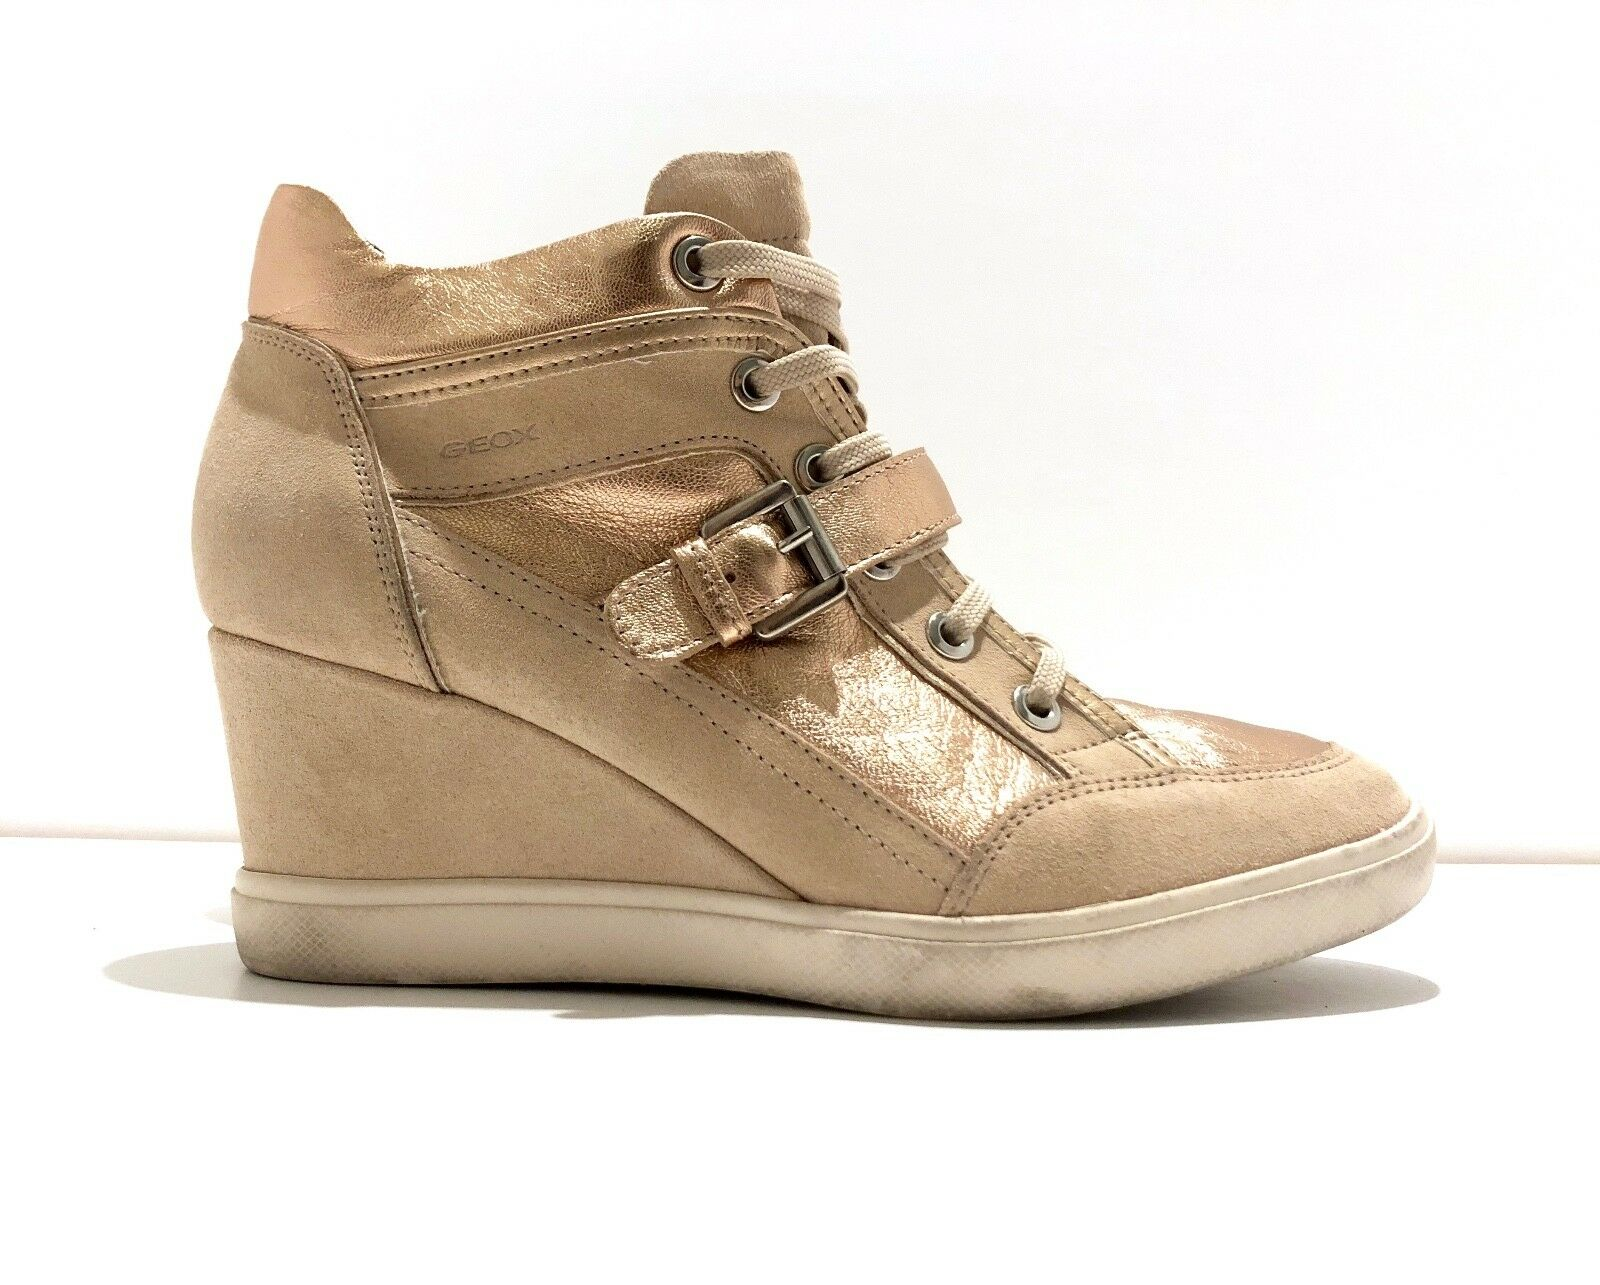 GEOX Eleni Wedge Heeled Sneaker Trainers Leather pink gold Beige Nude Size 8 38